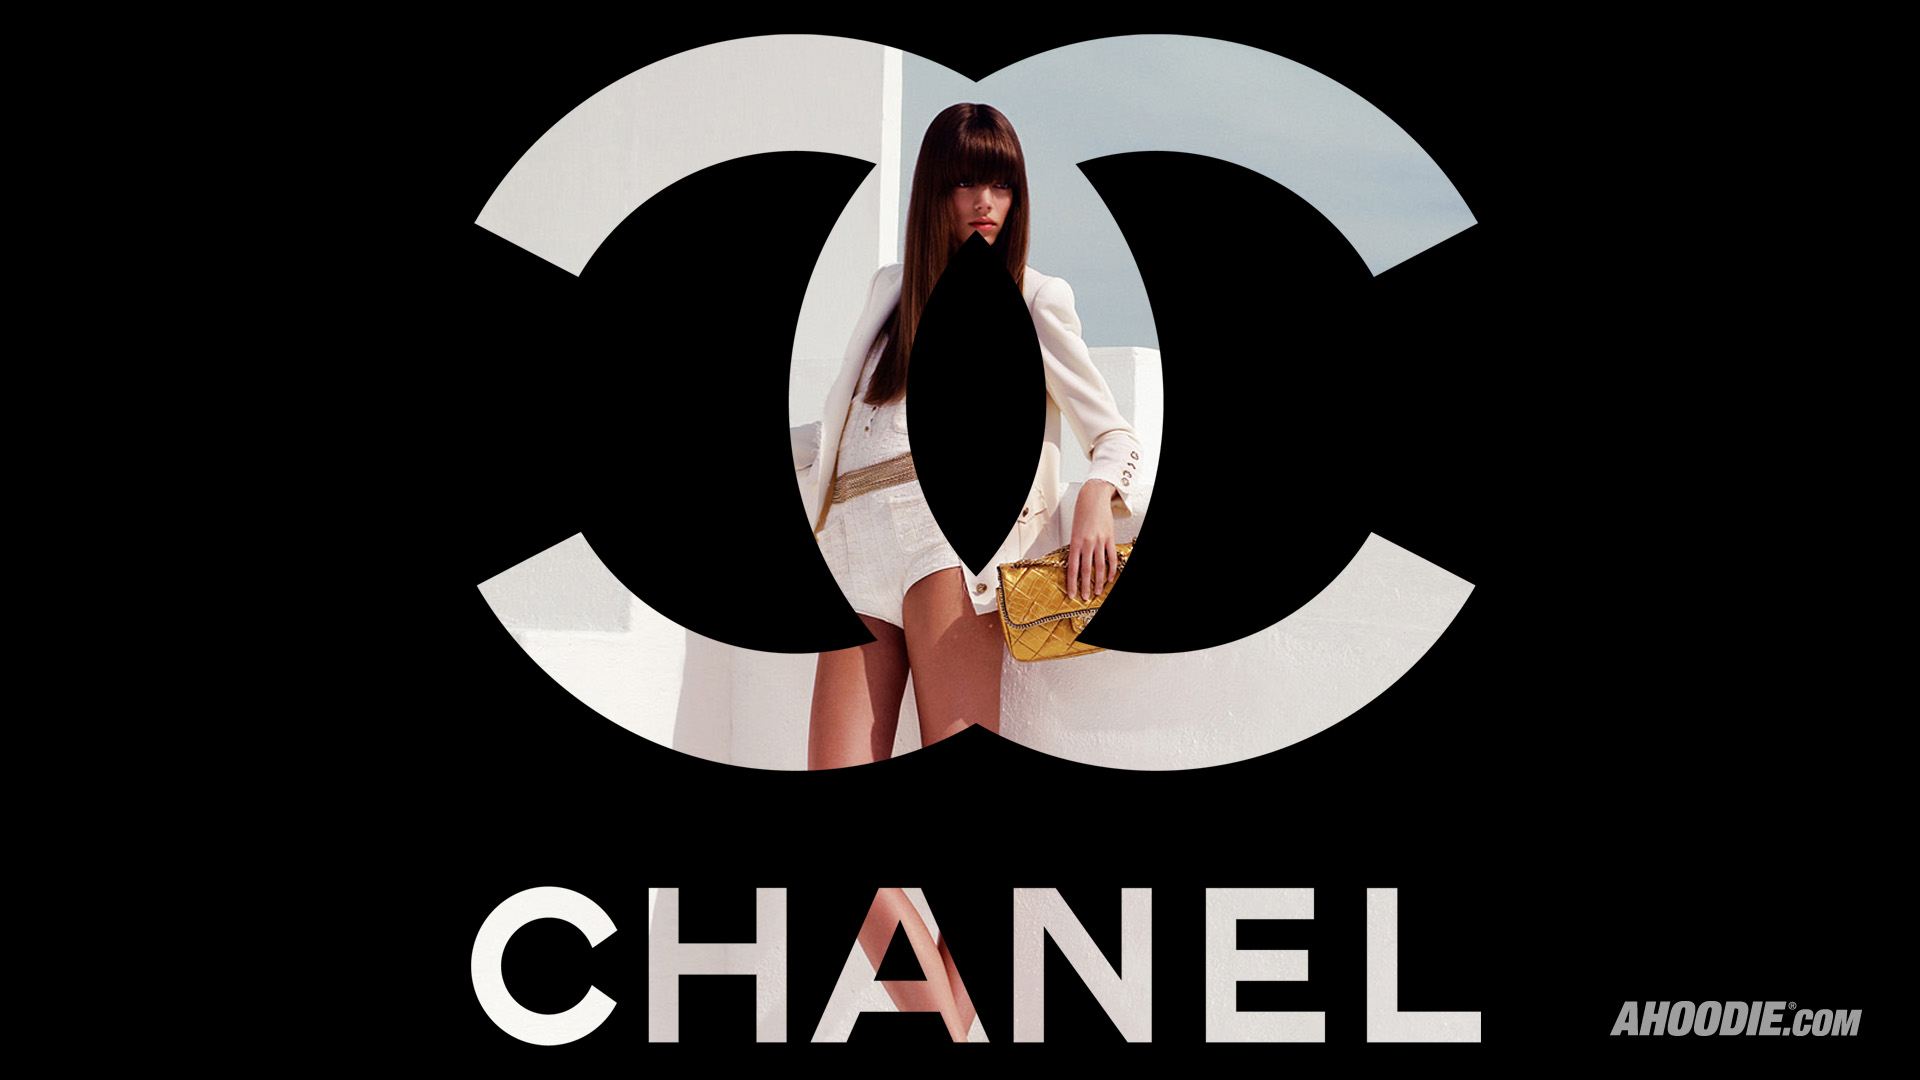 Chanel Wallpaper High Definition Wallpapers 21 1920x1080